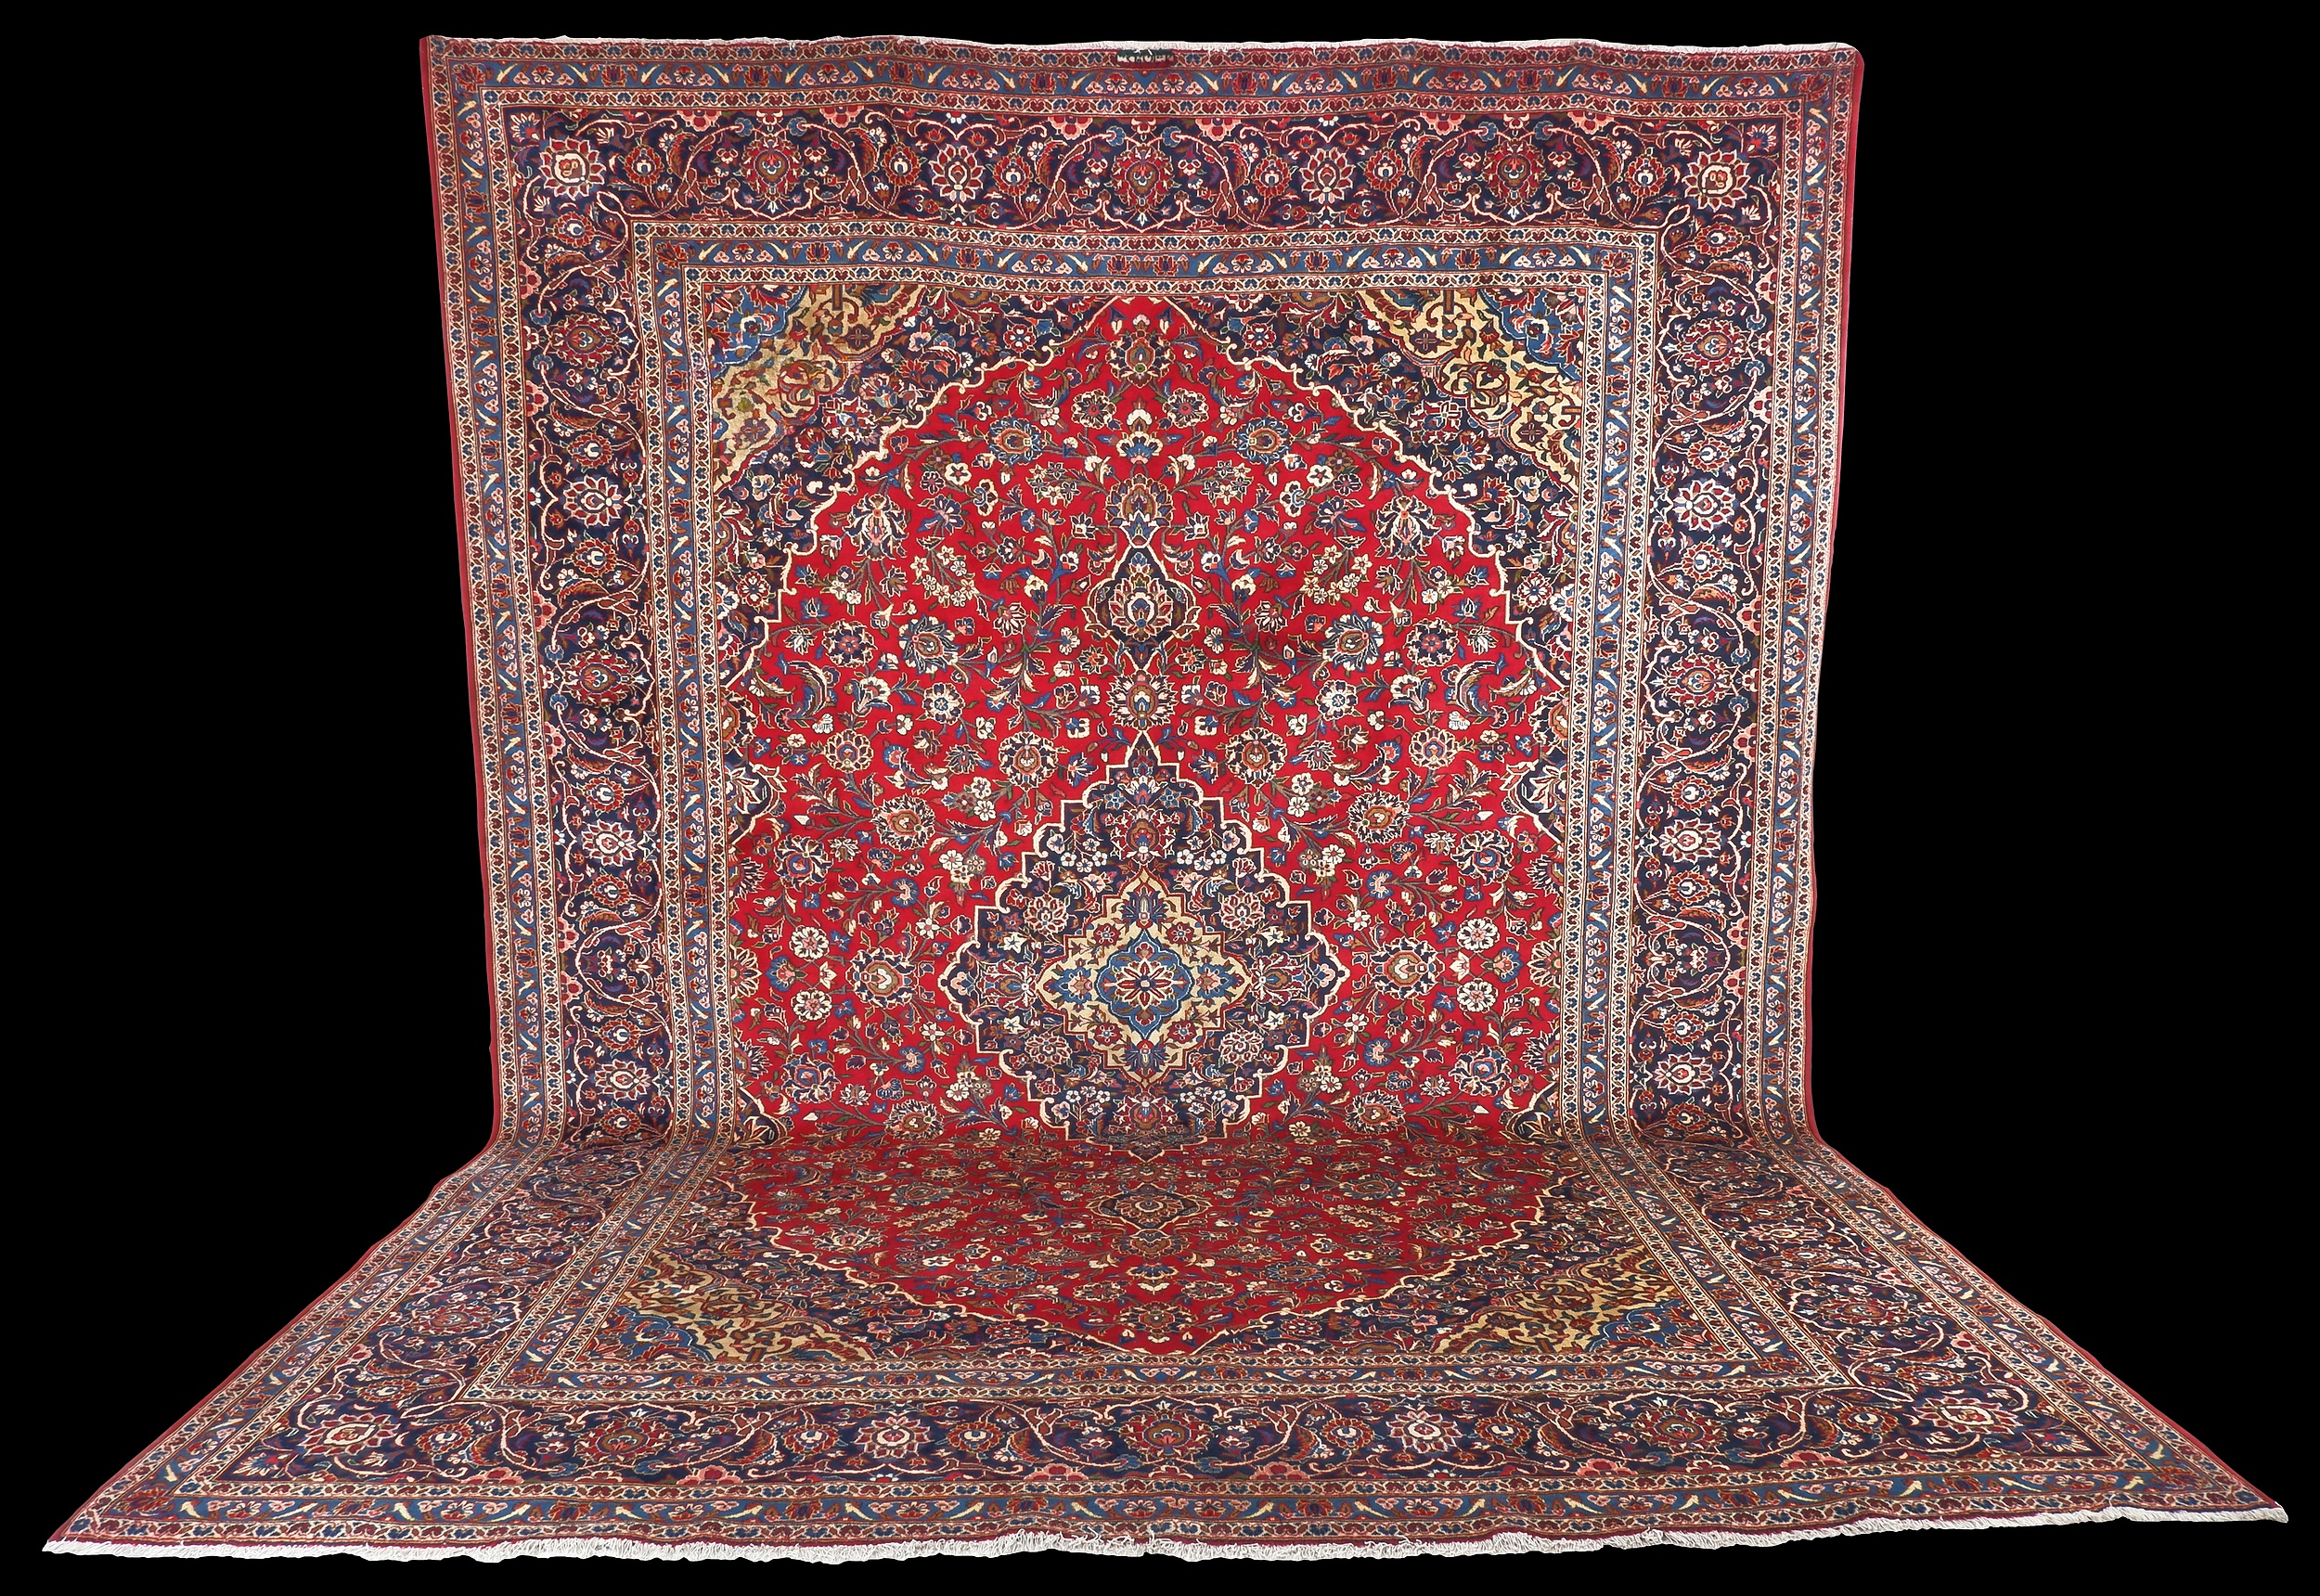 'Persian Kashan Hand Knotted Wool Pile Room Sized Carpet with Signed Kashan Cartouche'